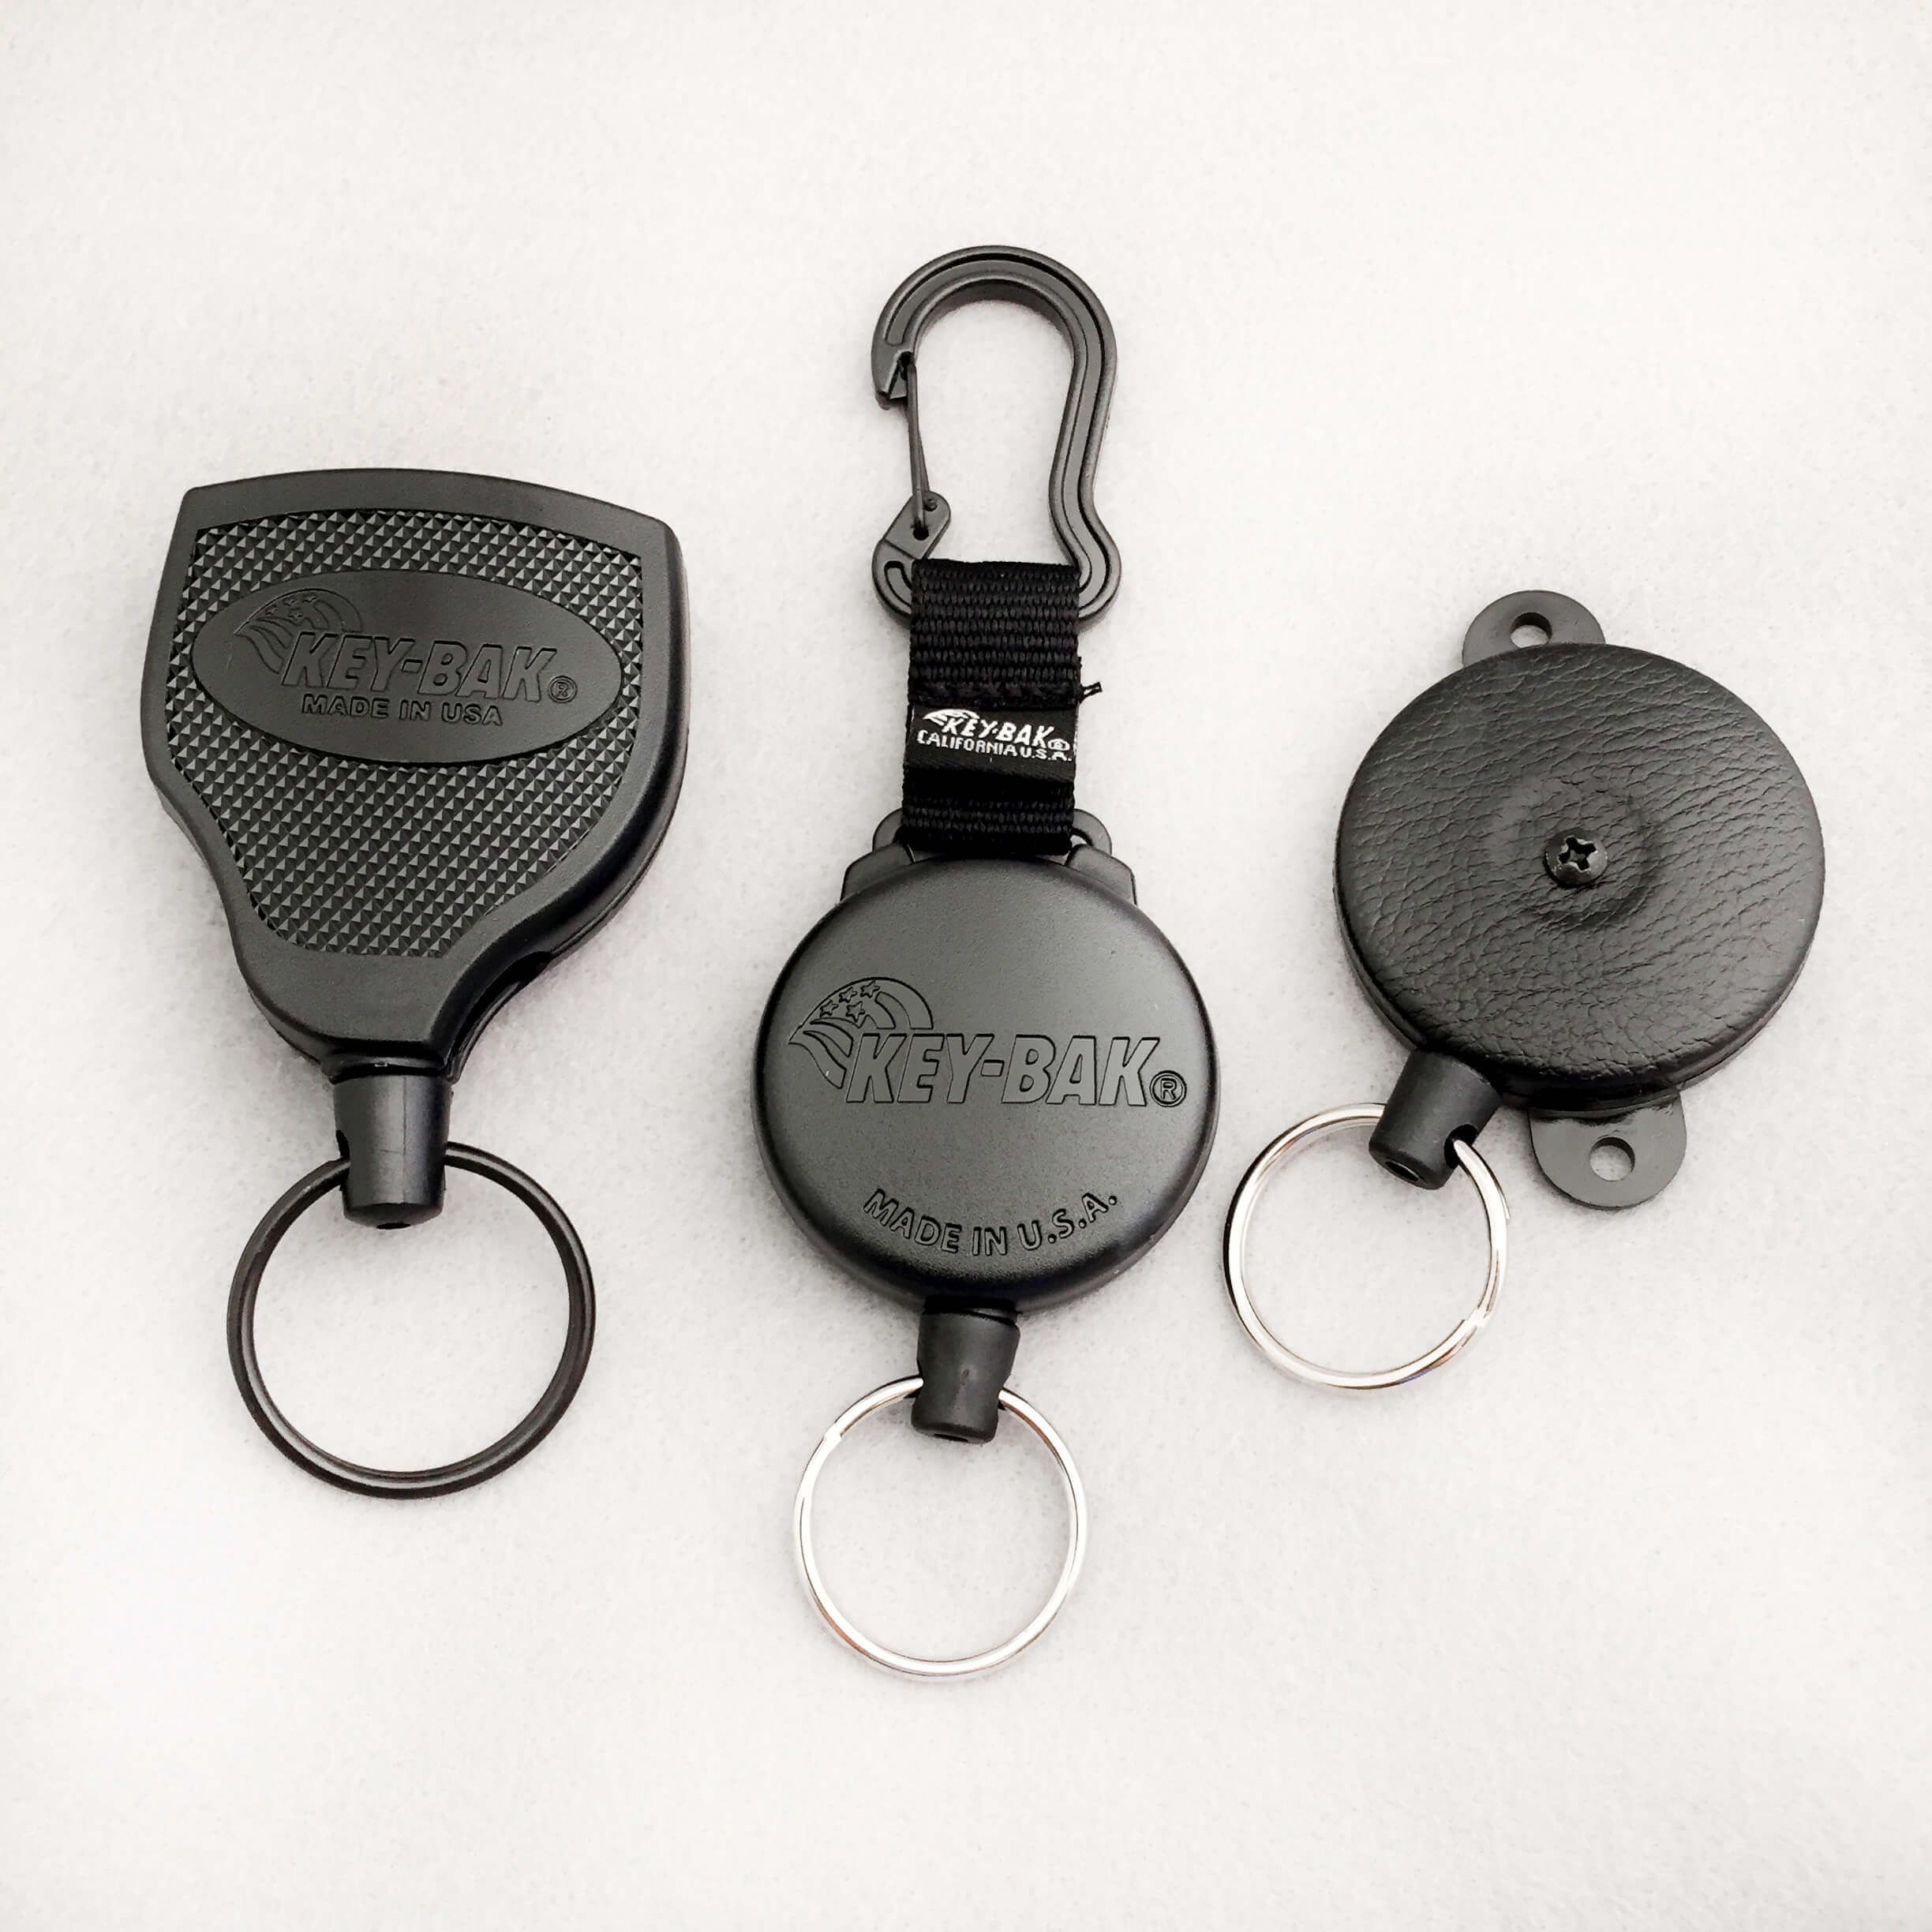 Key-Bak Retractors, Heavy Duty badge reels